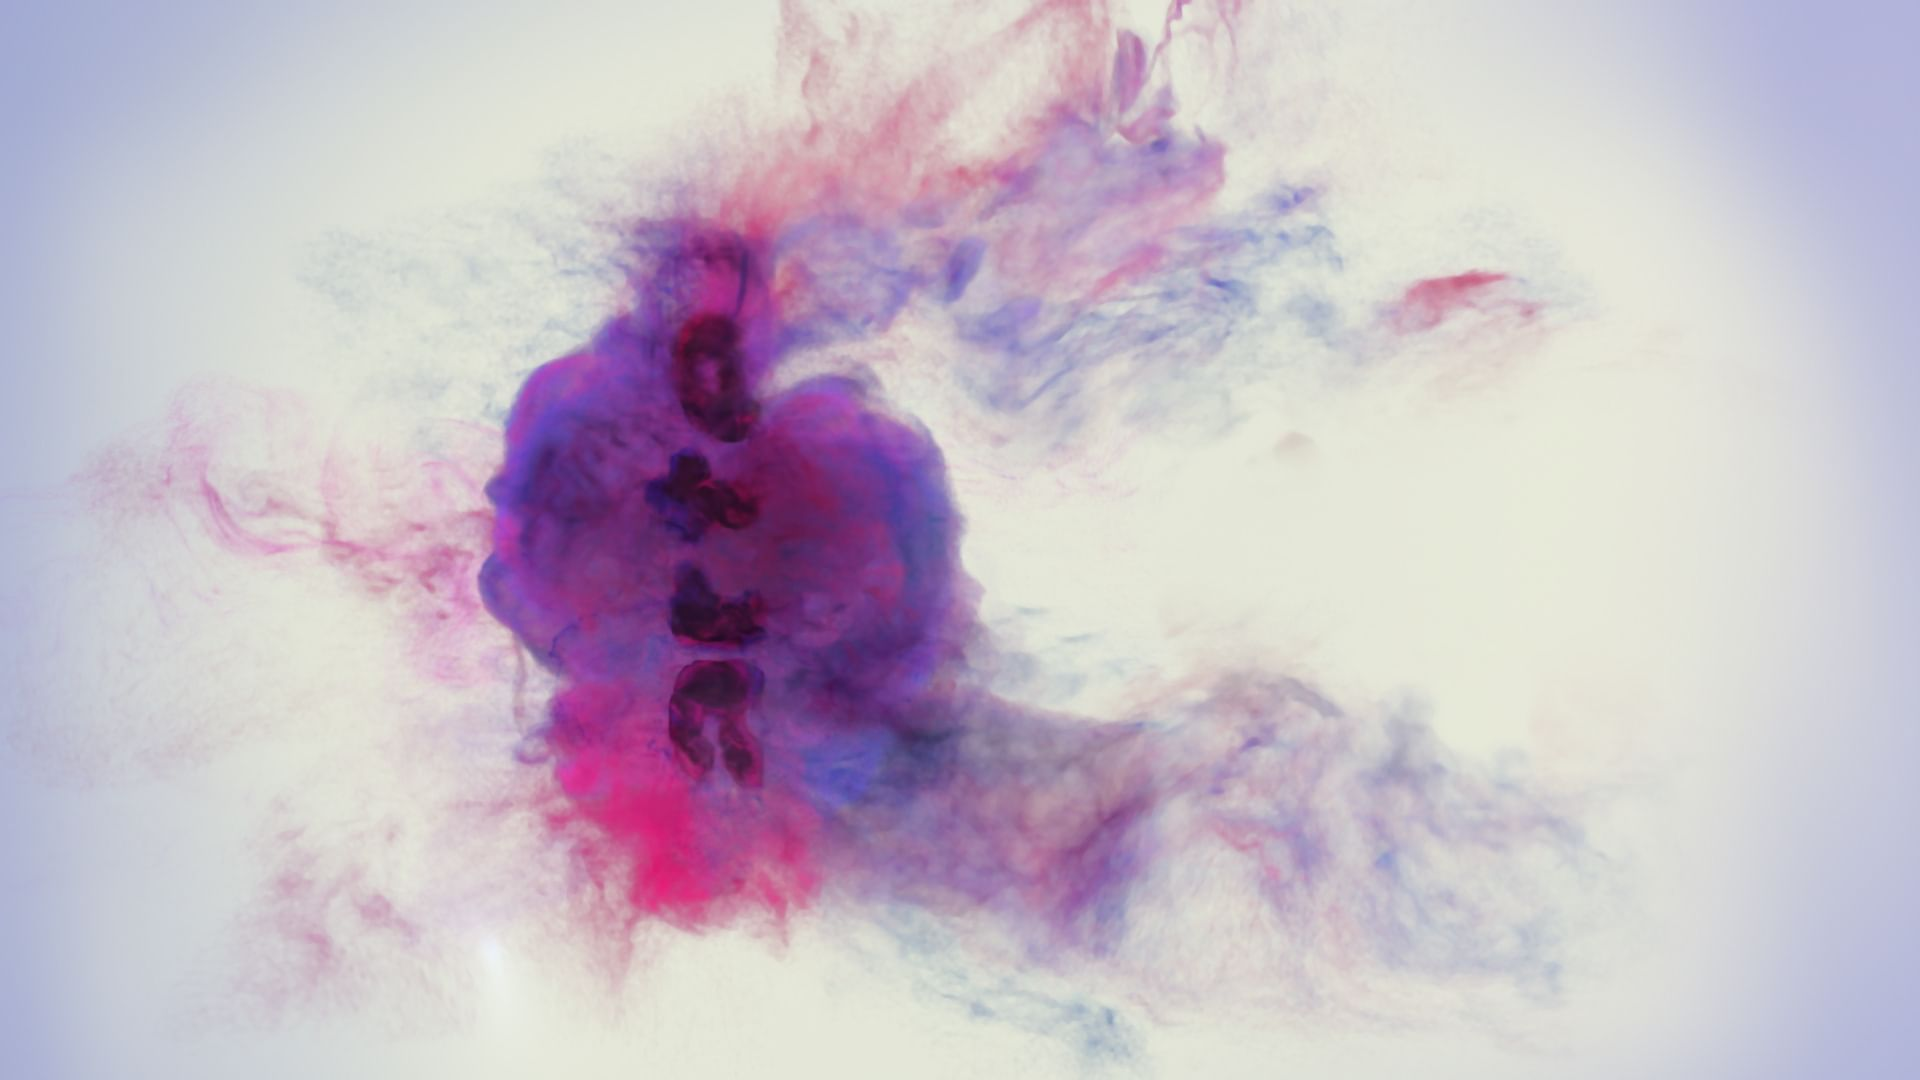 Hindi Zahra en session acoustique au musée Picasso